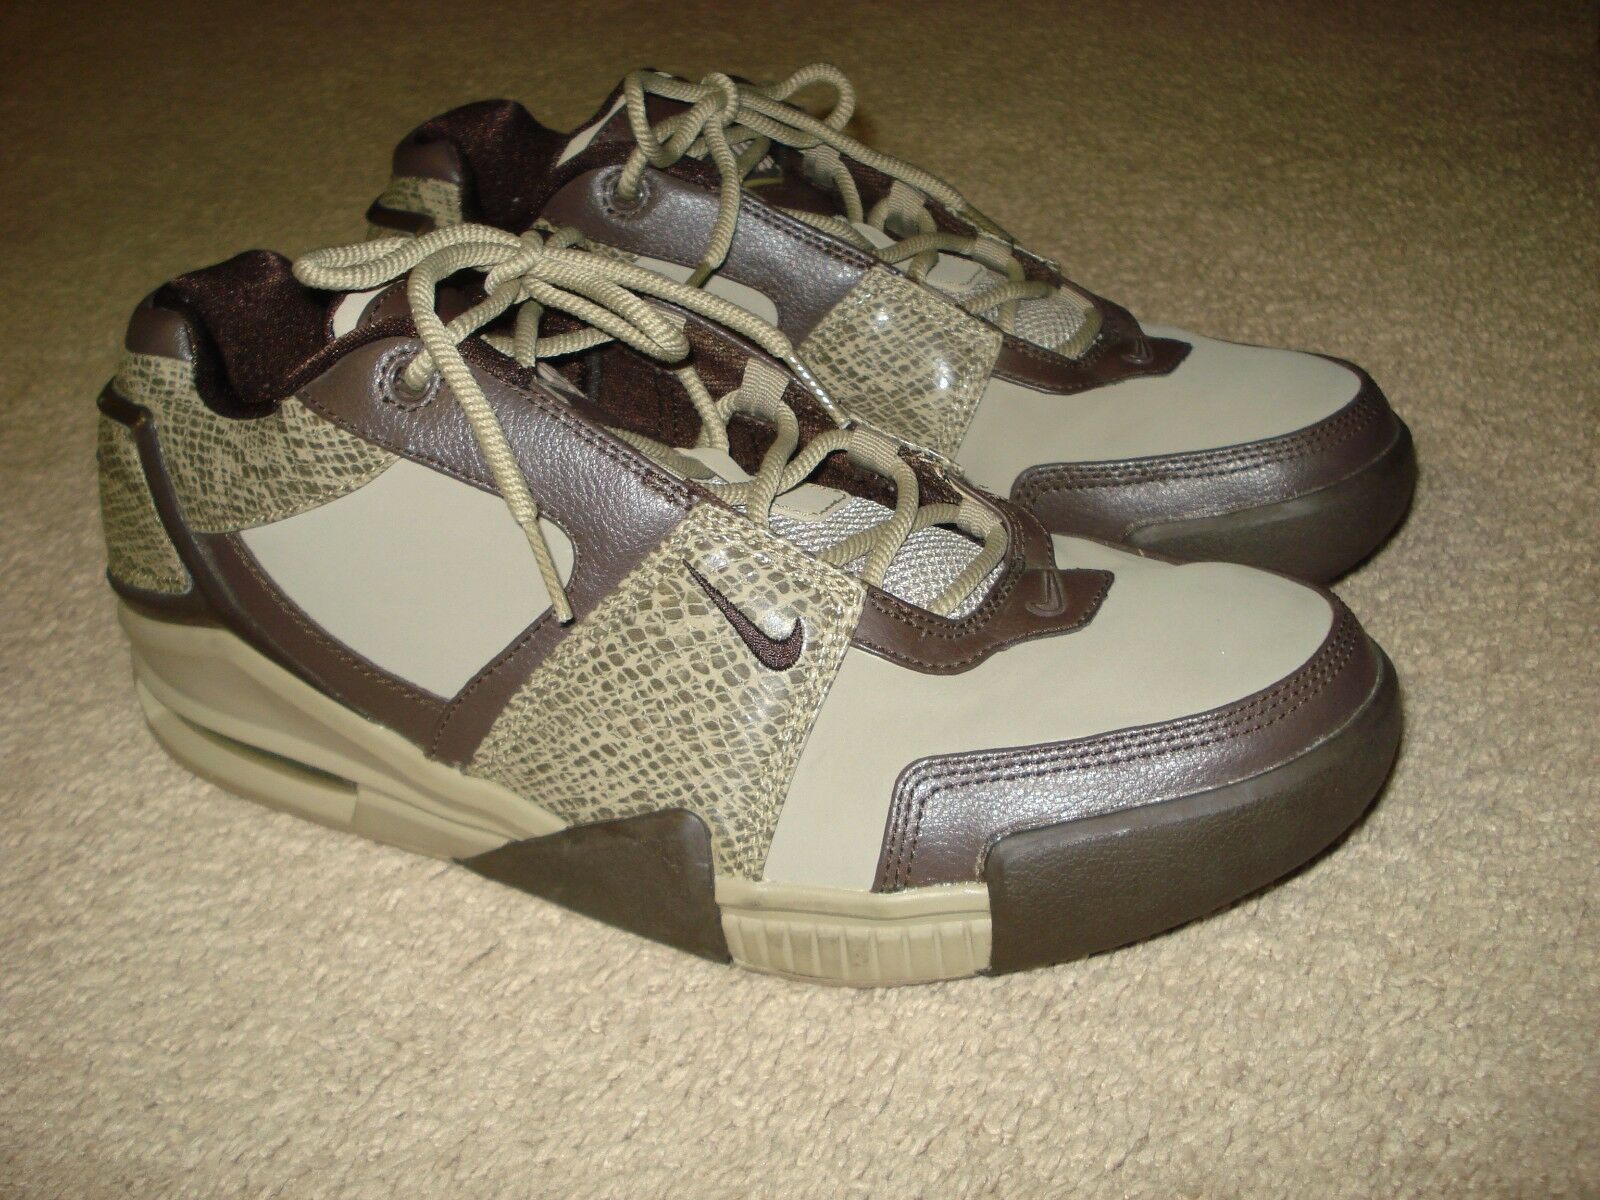 2008 Nike Air Force Formidable Low Snakeskin Rare Mens Brown Sneakers Size 12